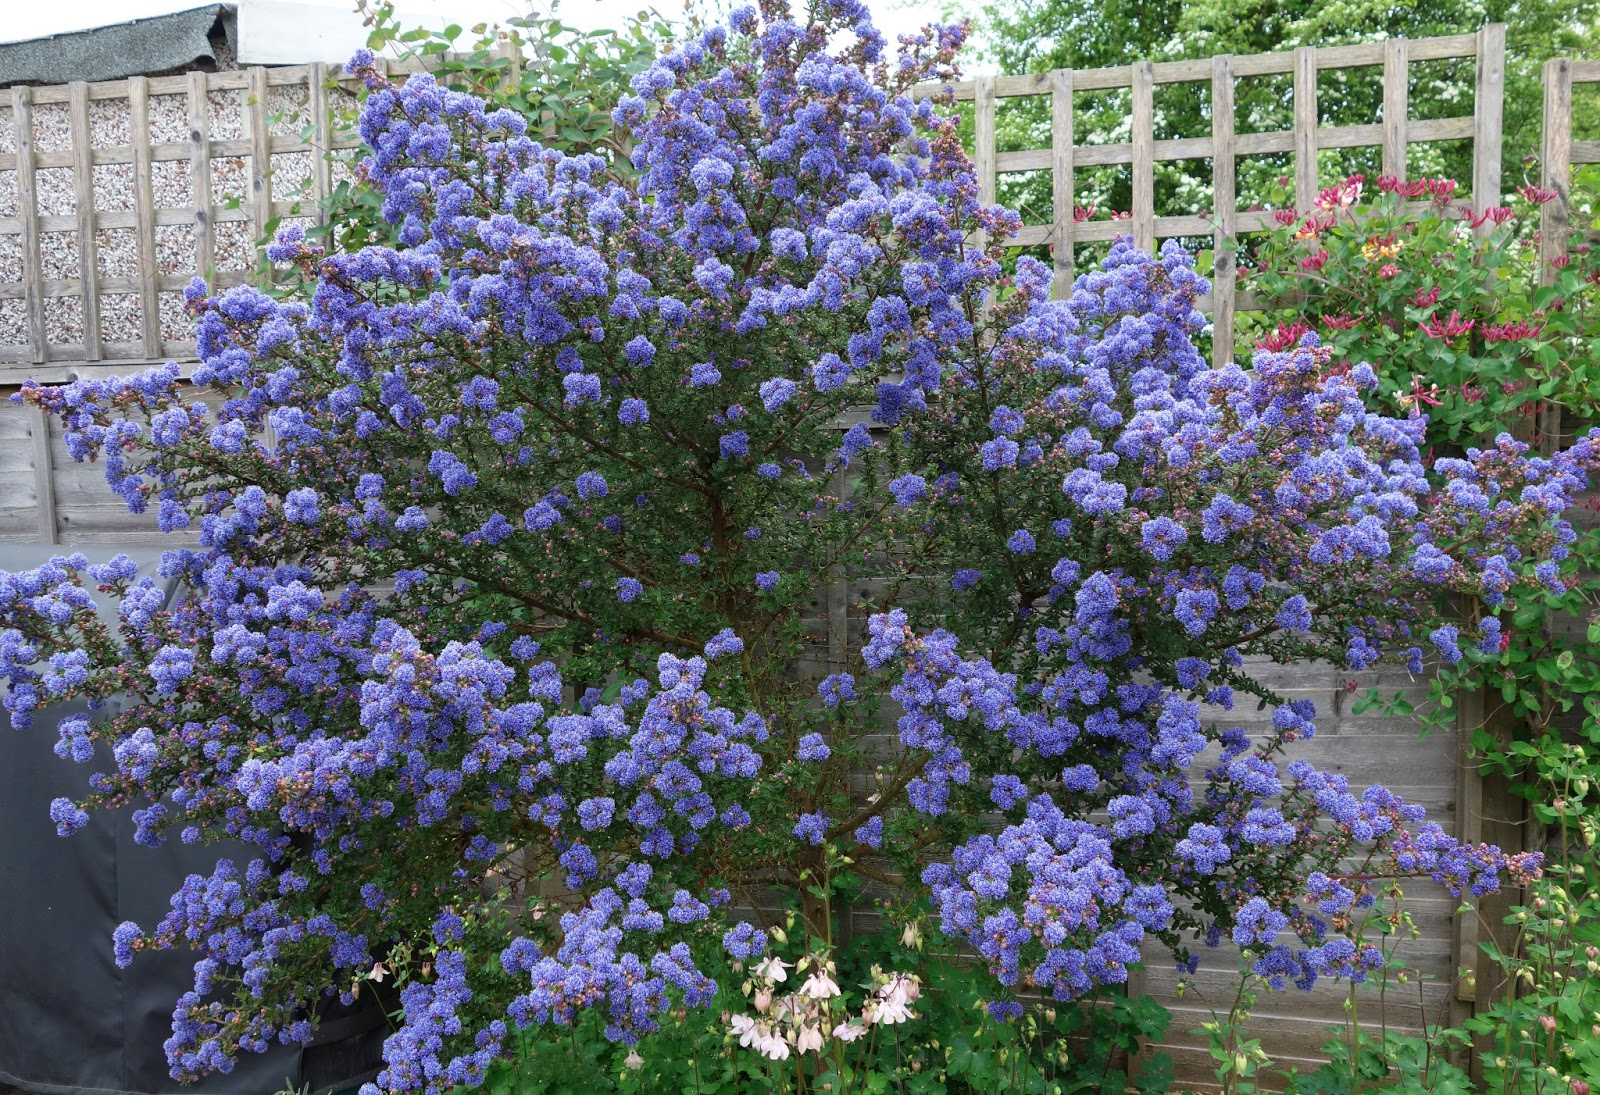 Urban pollinators brilliant blue ceanothus blooms for bees brilliant blue ceanothus blooms for bees izmirmasajfo